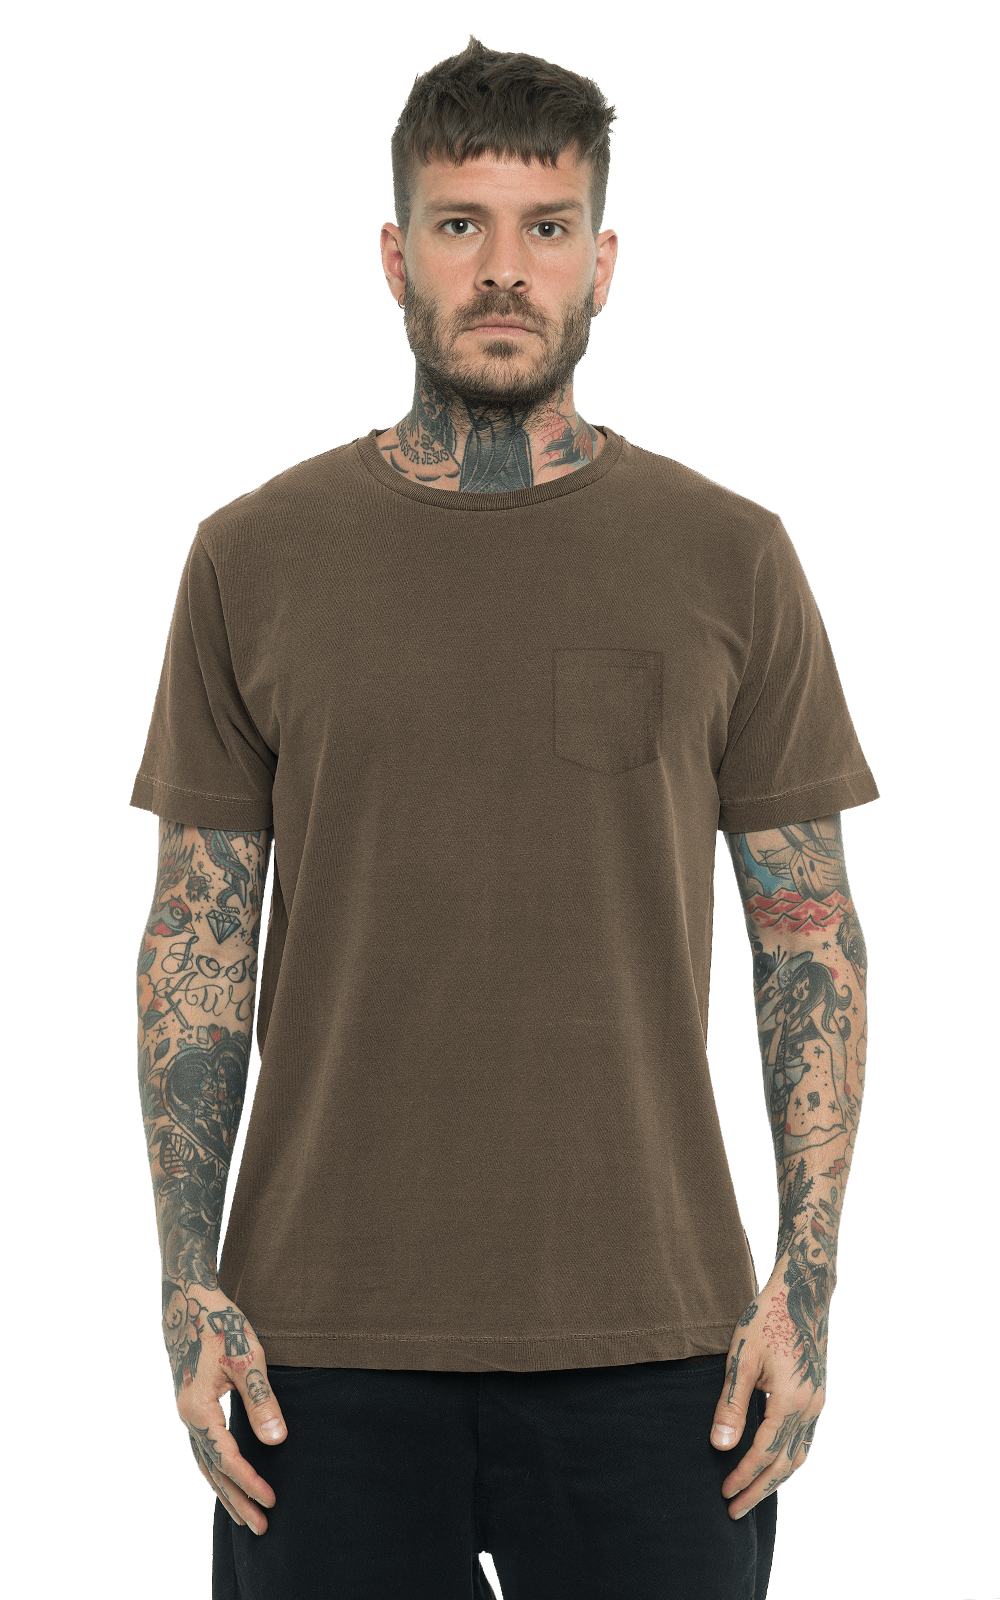 Camiseta_TinturadaBolso_Brown_Frente